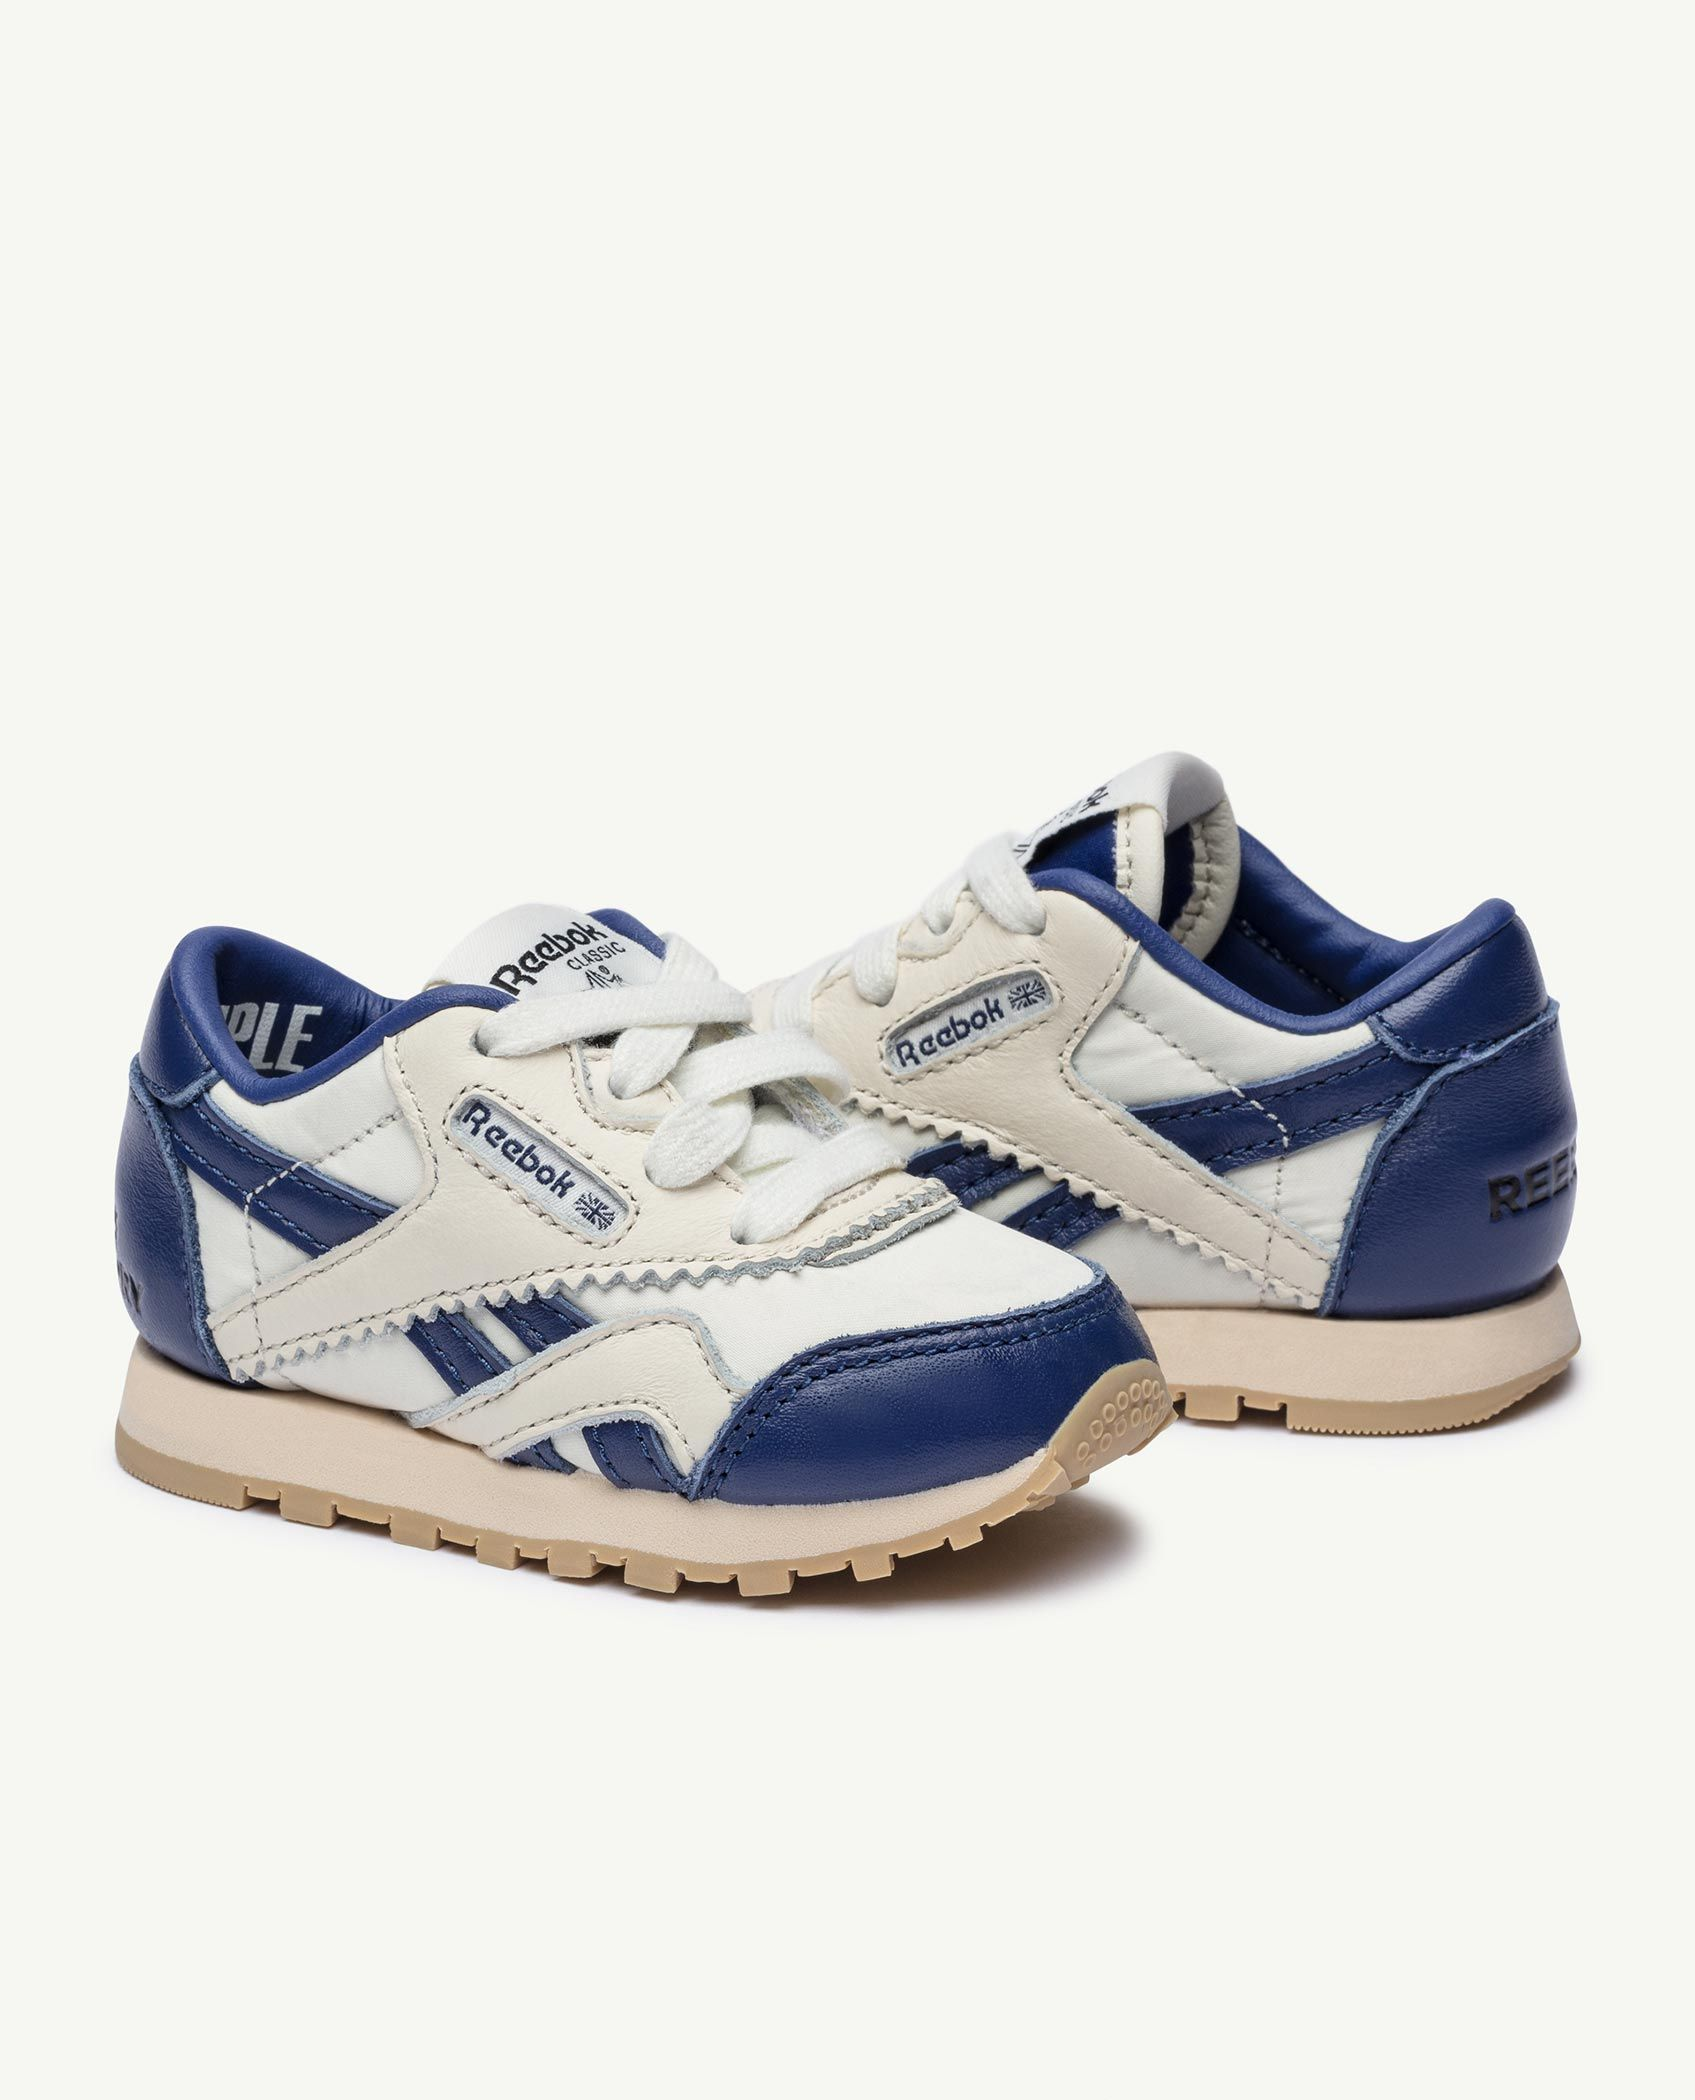 Reebok x The Animals Observatory Classic Nylon Navy Baby img-3